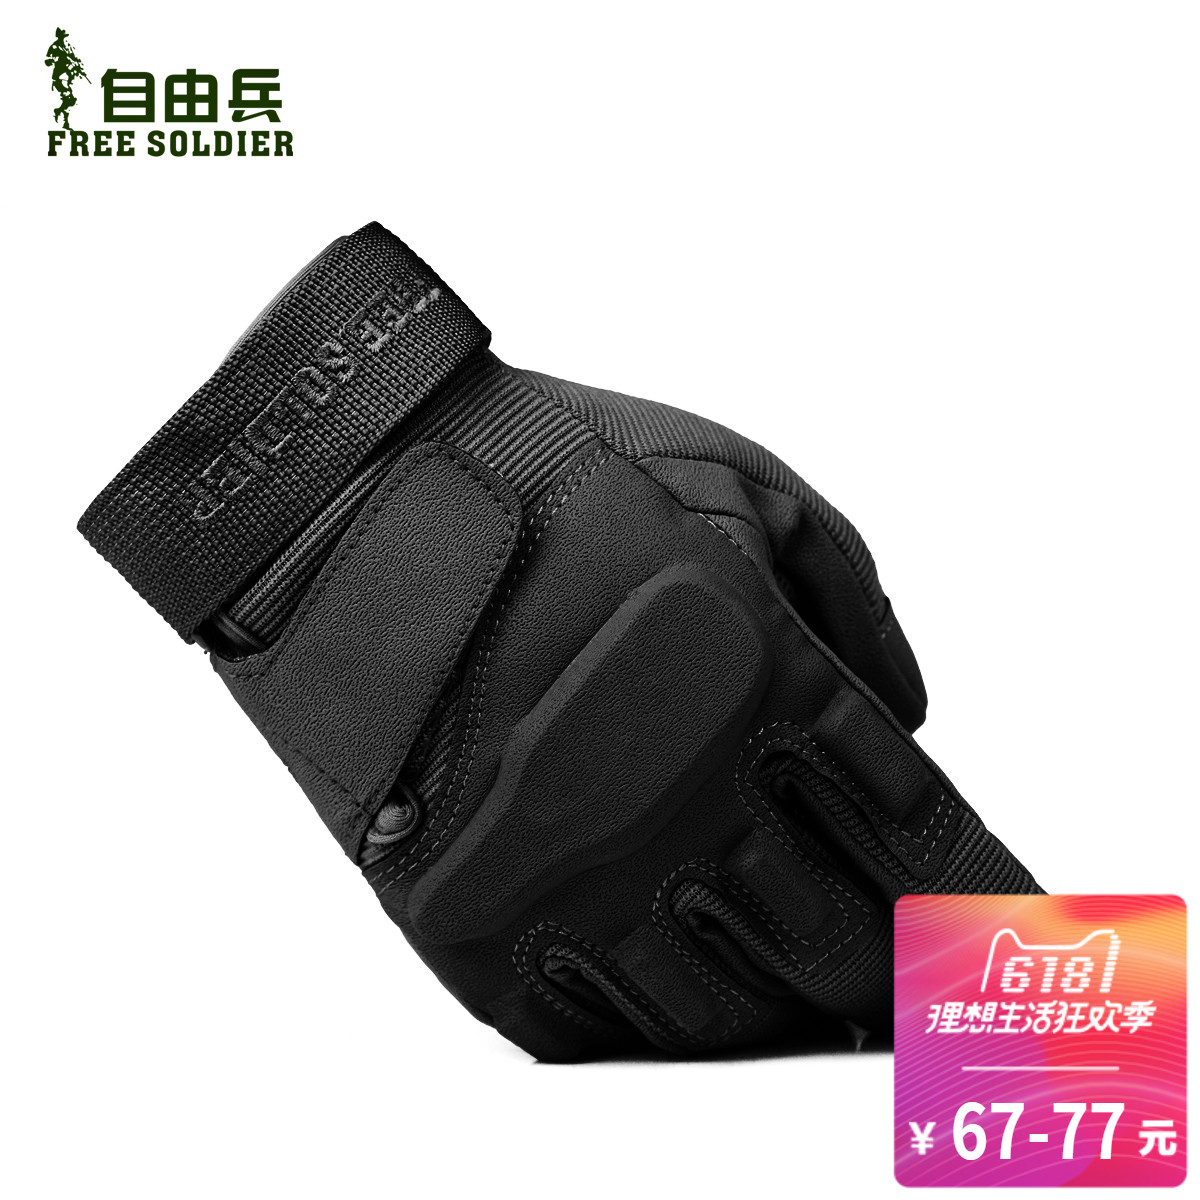 Freelance men's all-finger Training Gloves Outdoor wear-resistant and skid-resistant climbing gloves Special soldiers'Training Gloves